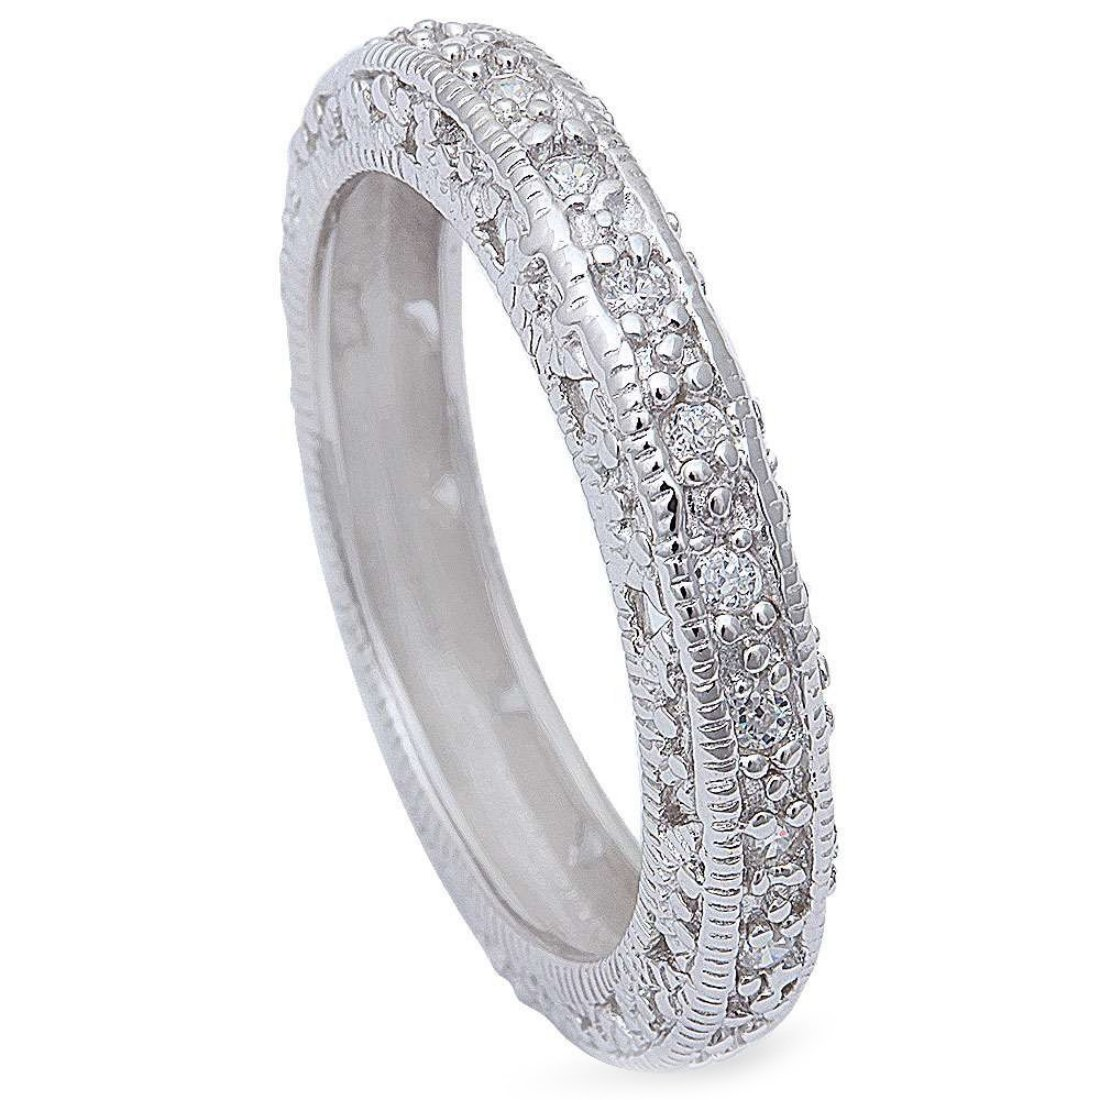 4.3mm Vintage Antique Design Full Eternity Stackable Band Ring Round Cubic Zirconia 925 Sterling Silver, Size-7